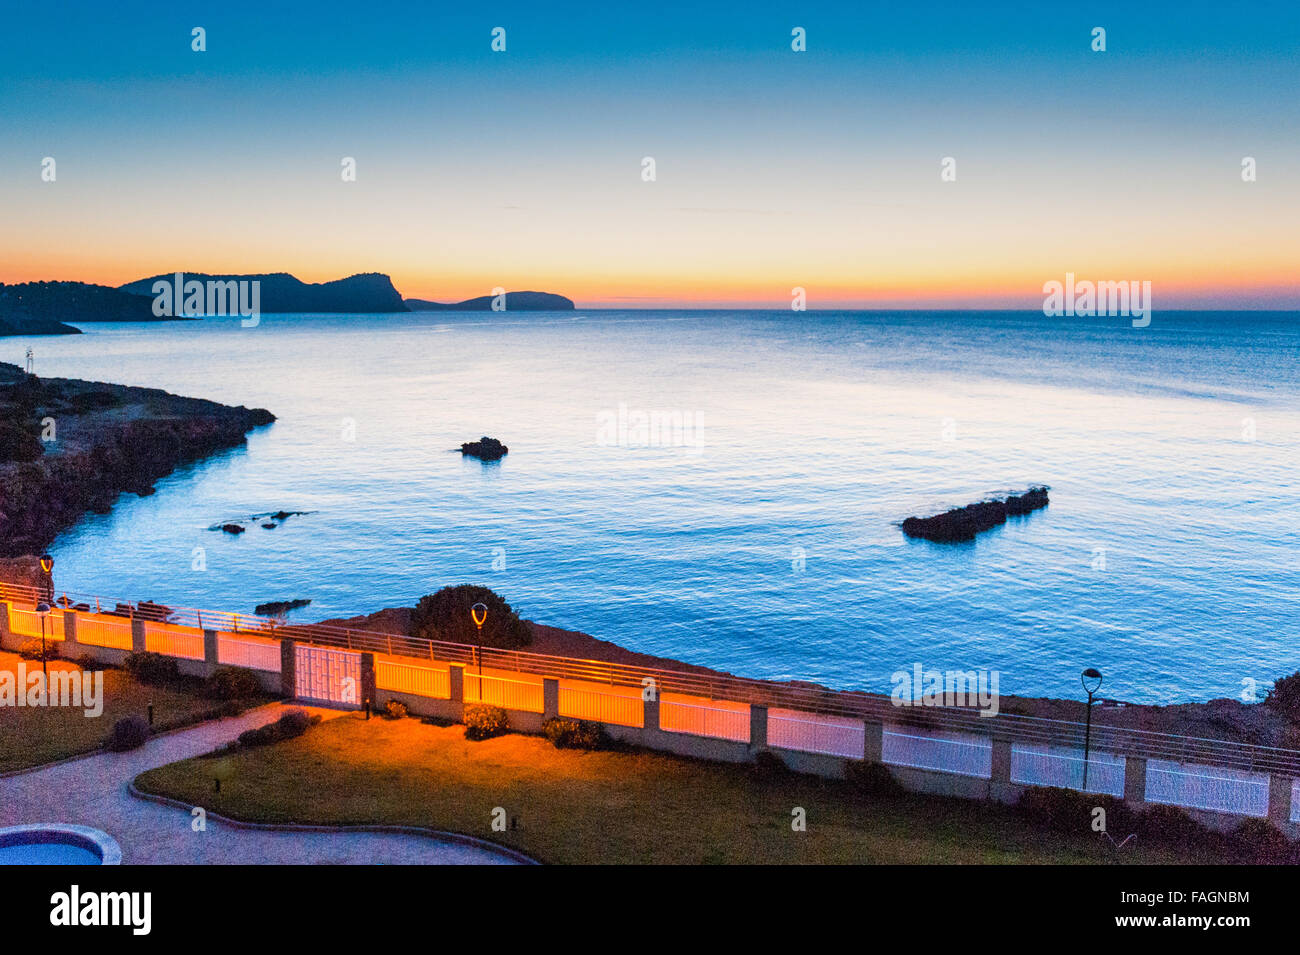 Sunrise over the calm beautiful water in Es Canar, Ibiza, part of the Balearic Islands in Spain,Europe. Stock Photo